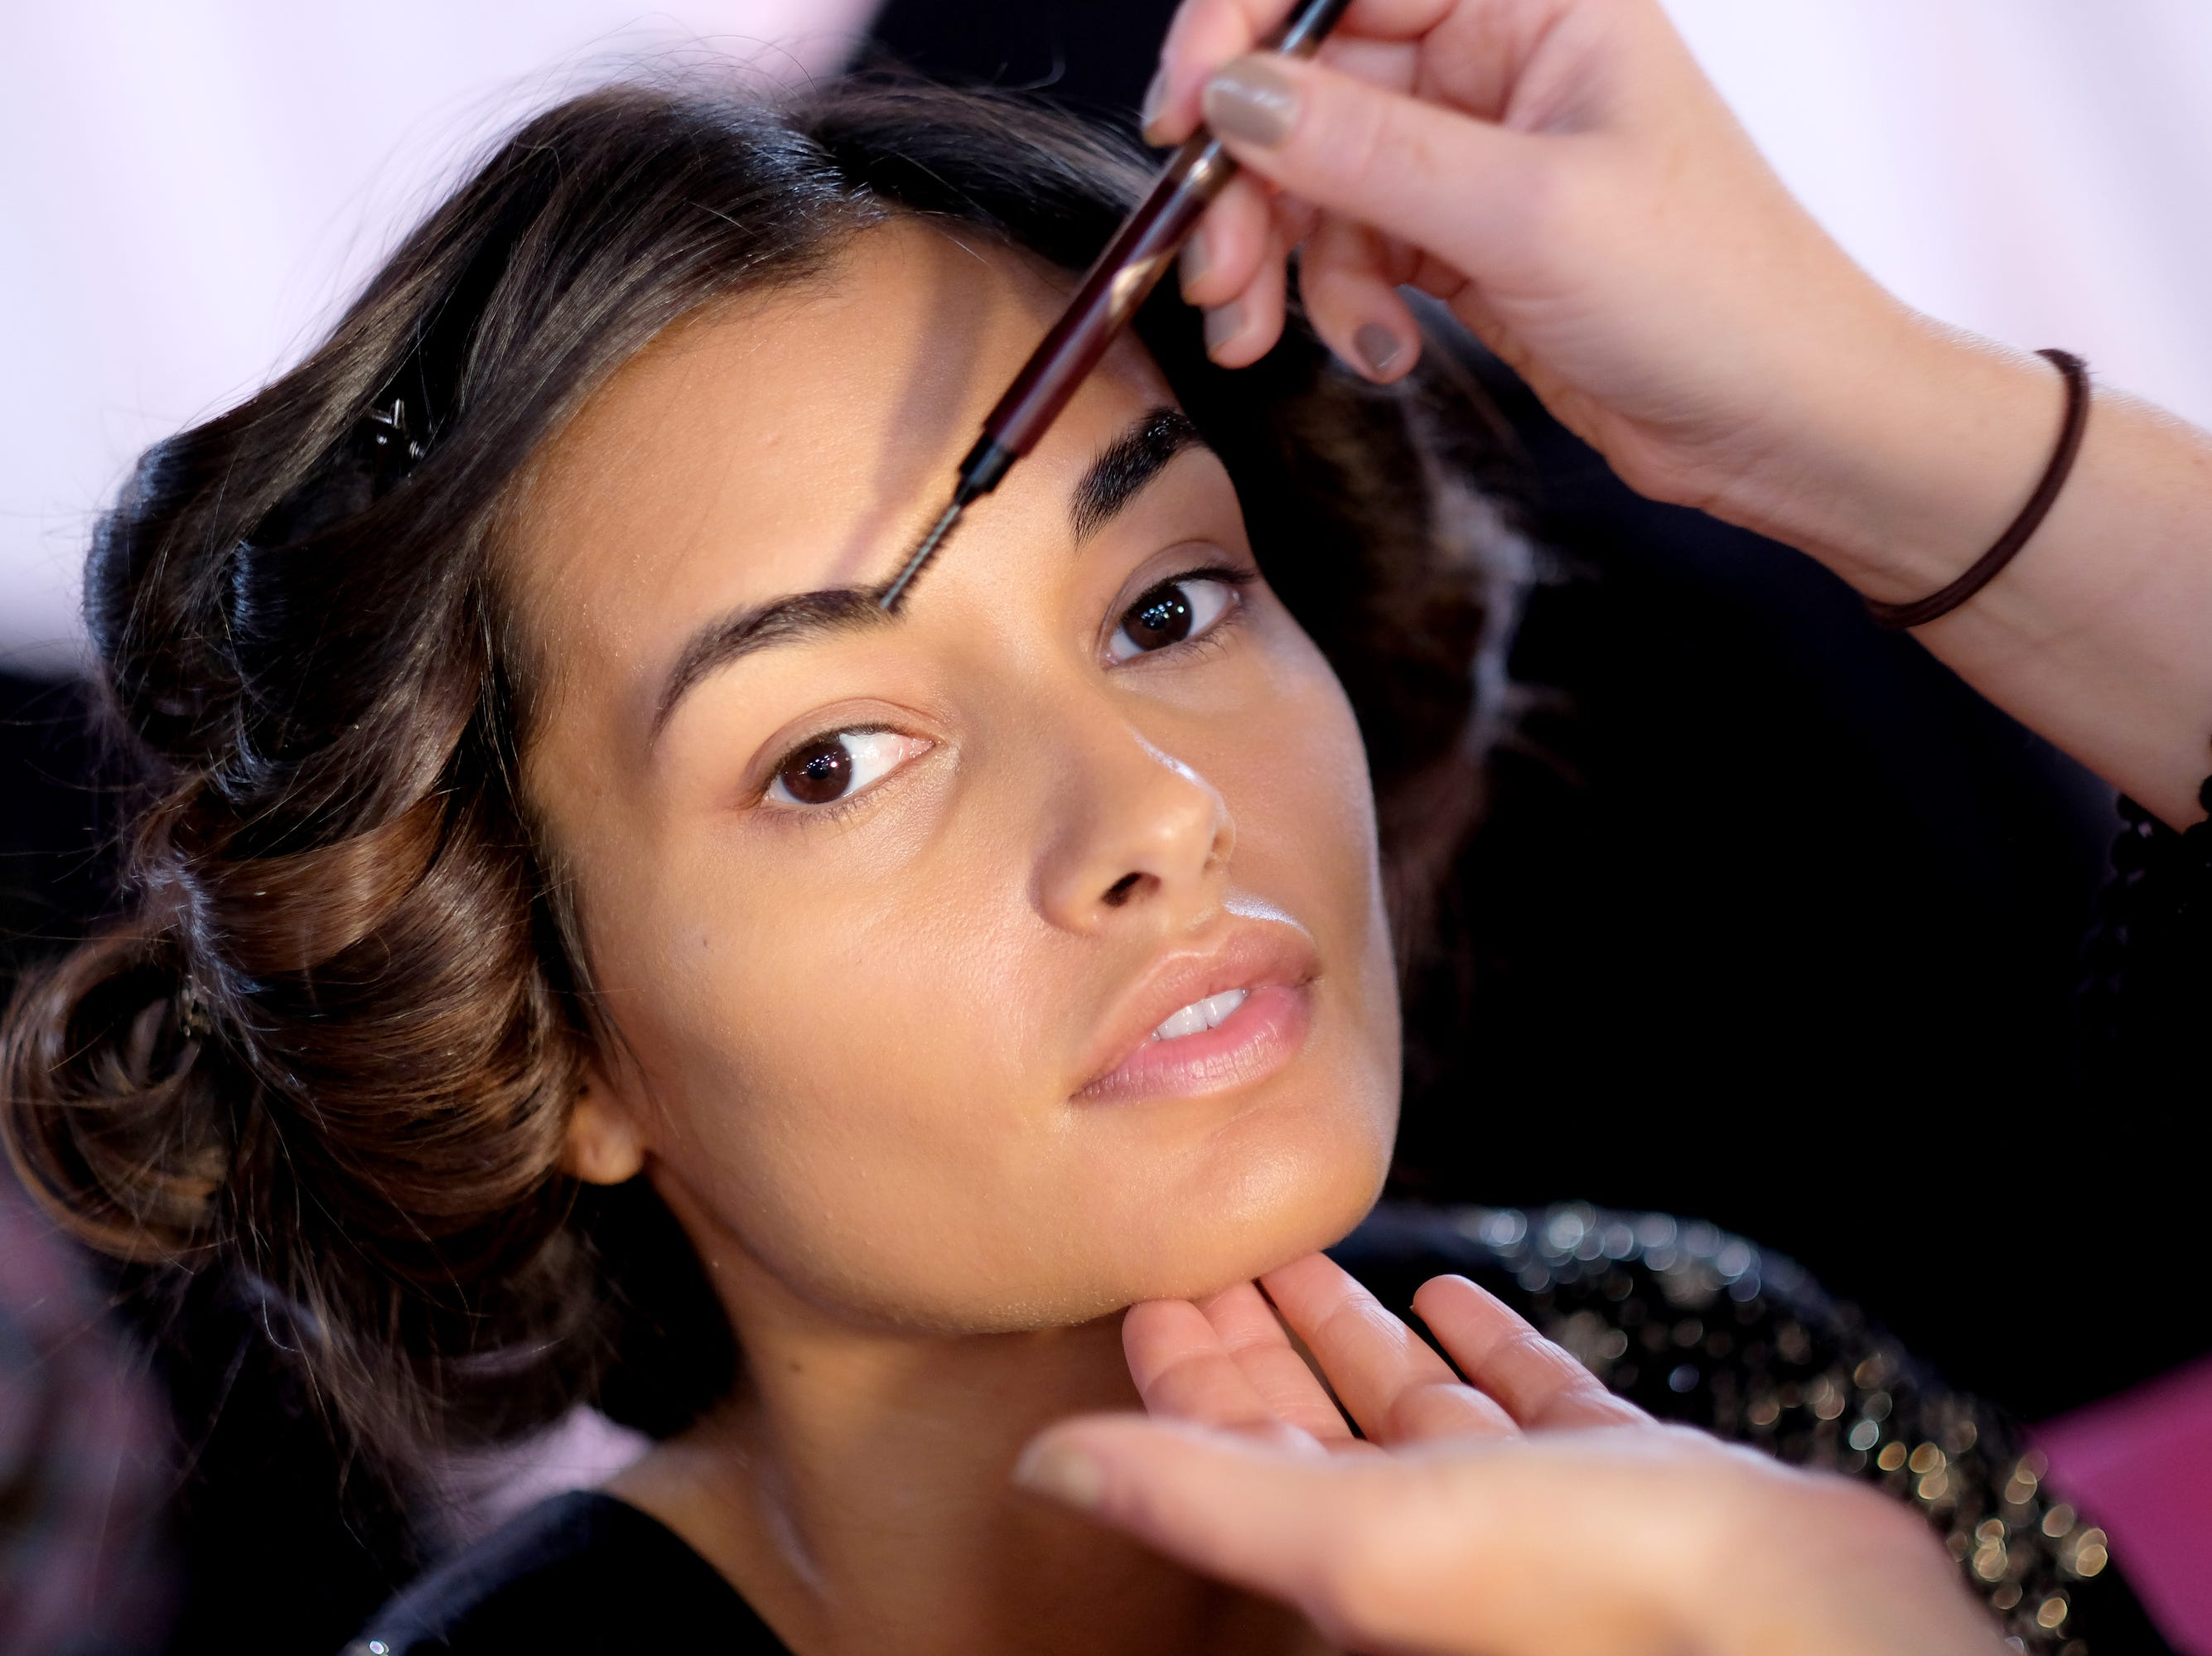 Gizele Oliveira will be ready for her close-up!